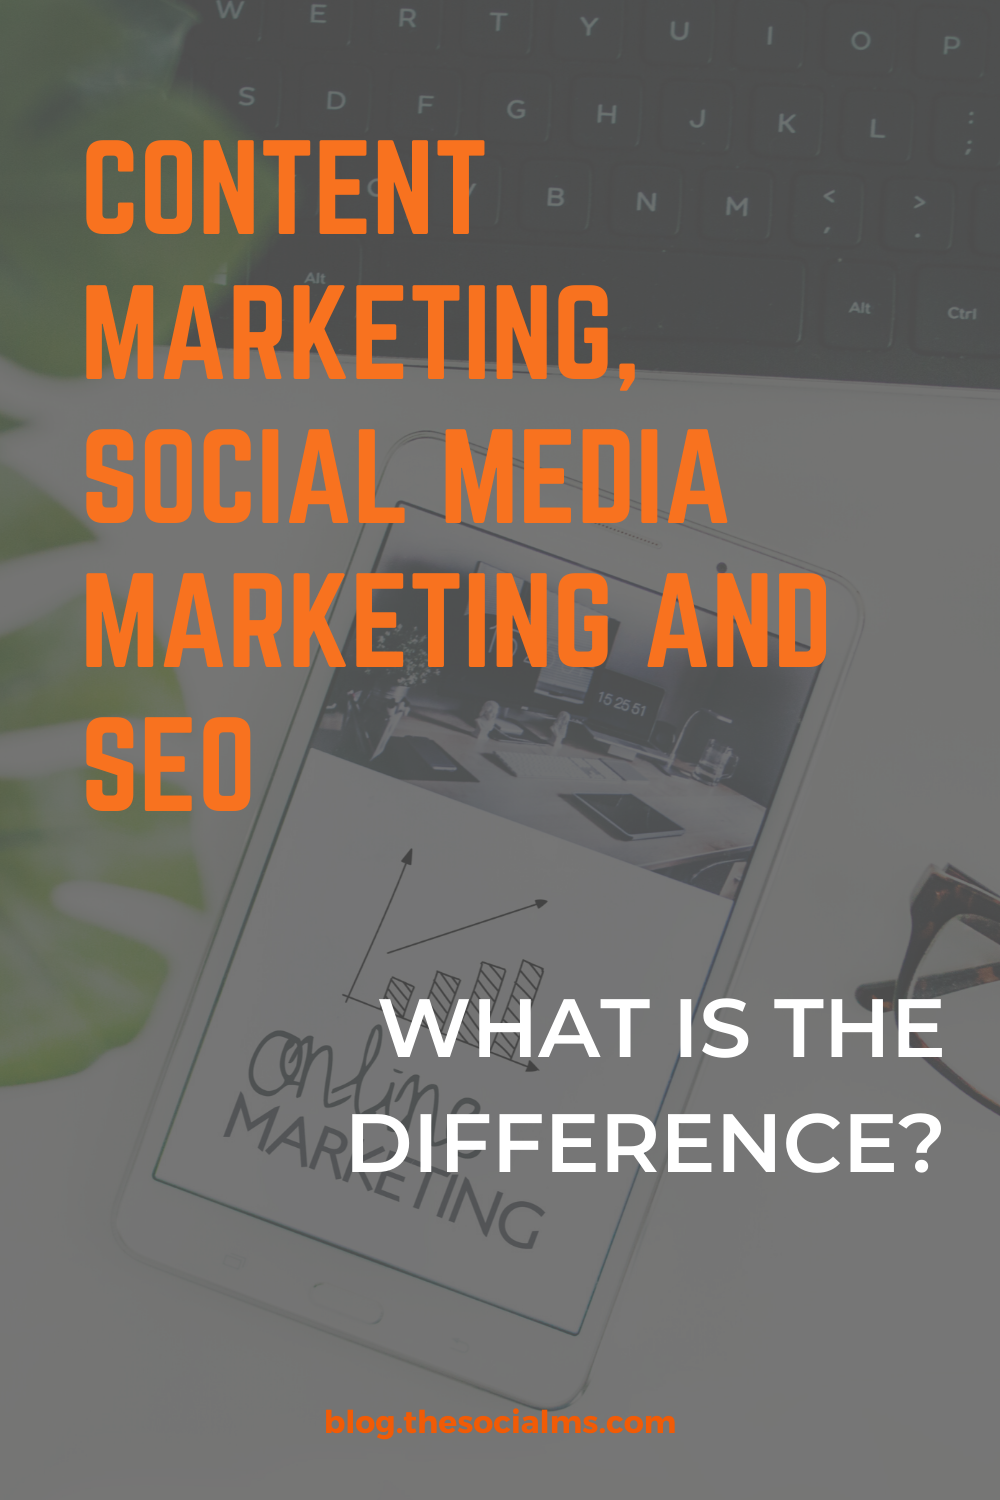 Social Media Marketing does not equal Content Marketing and Content Marketing does not equal SEO. But what exactly are they and how are they connected? #bloggingtips #seo #socialmediamarketing #contentmarketing